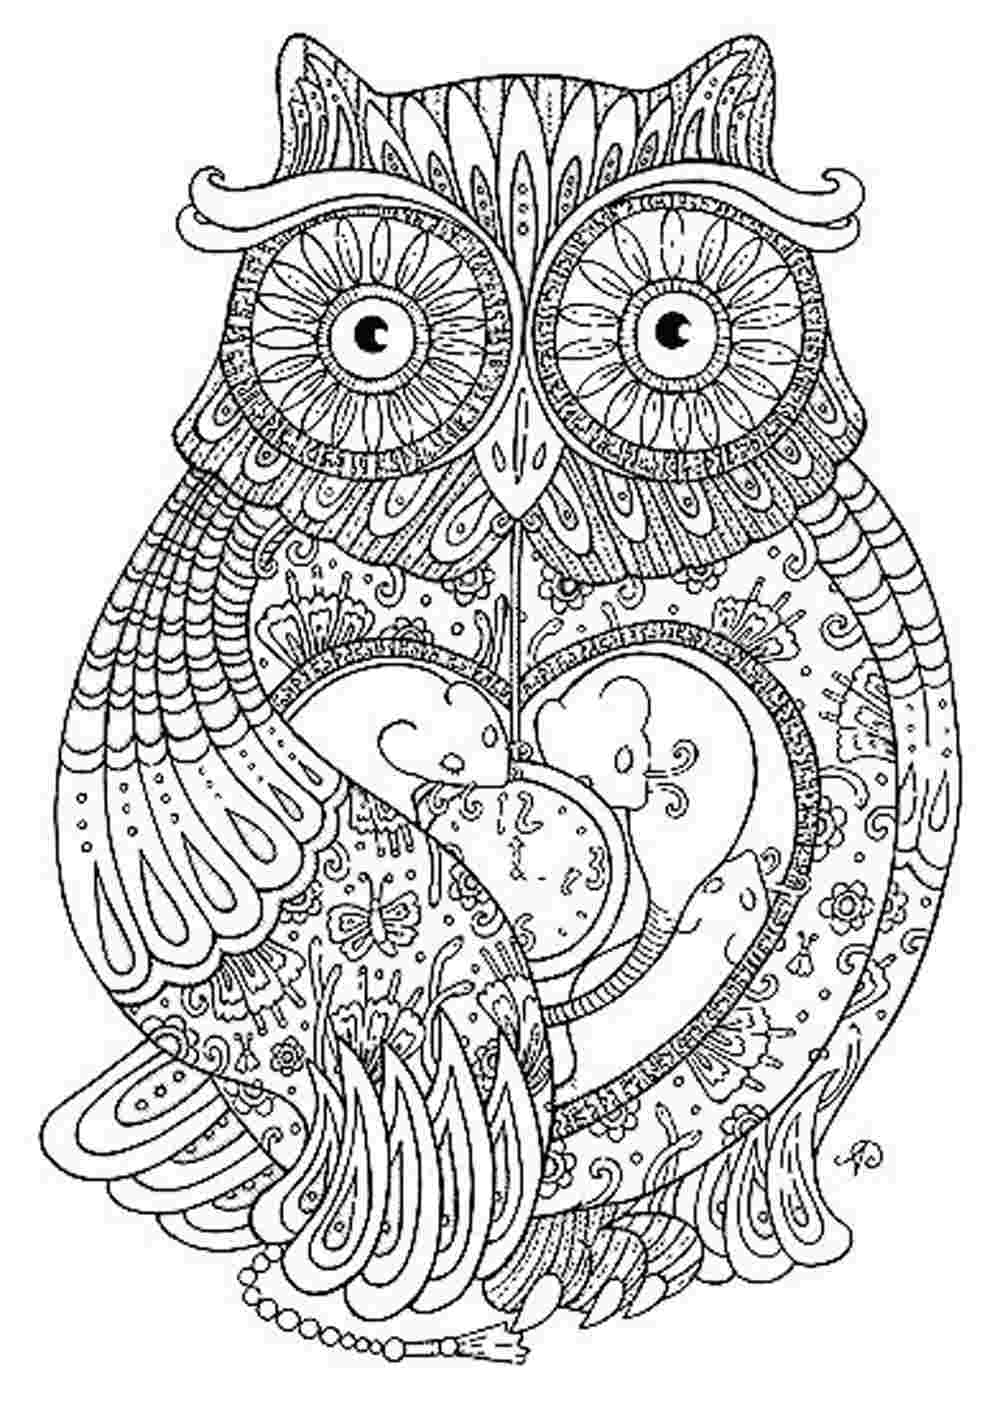 coloring pictures for adults free printable abstract coloring pages for adults pictures for adults coloring